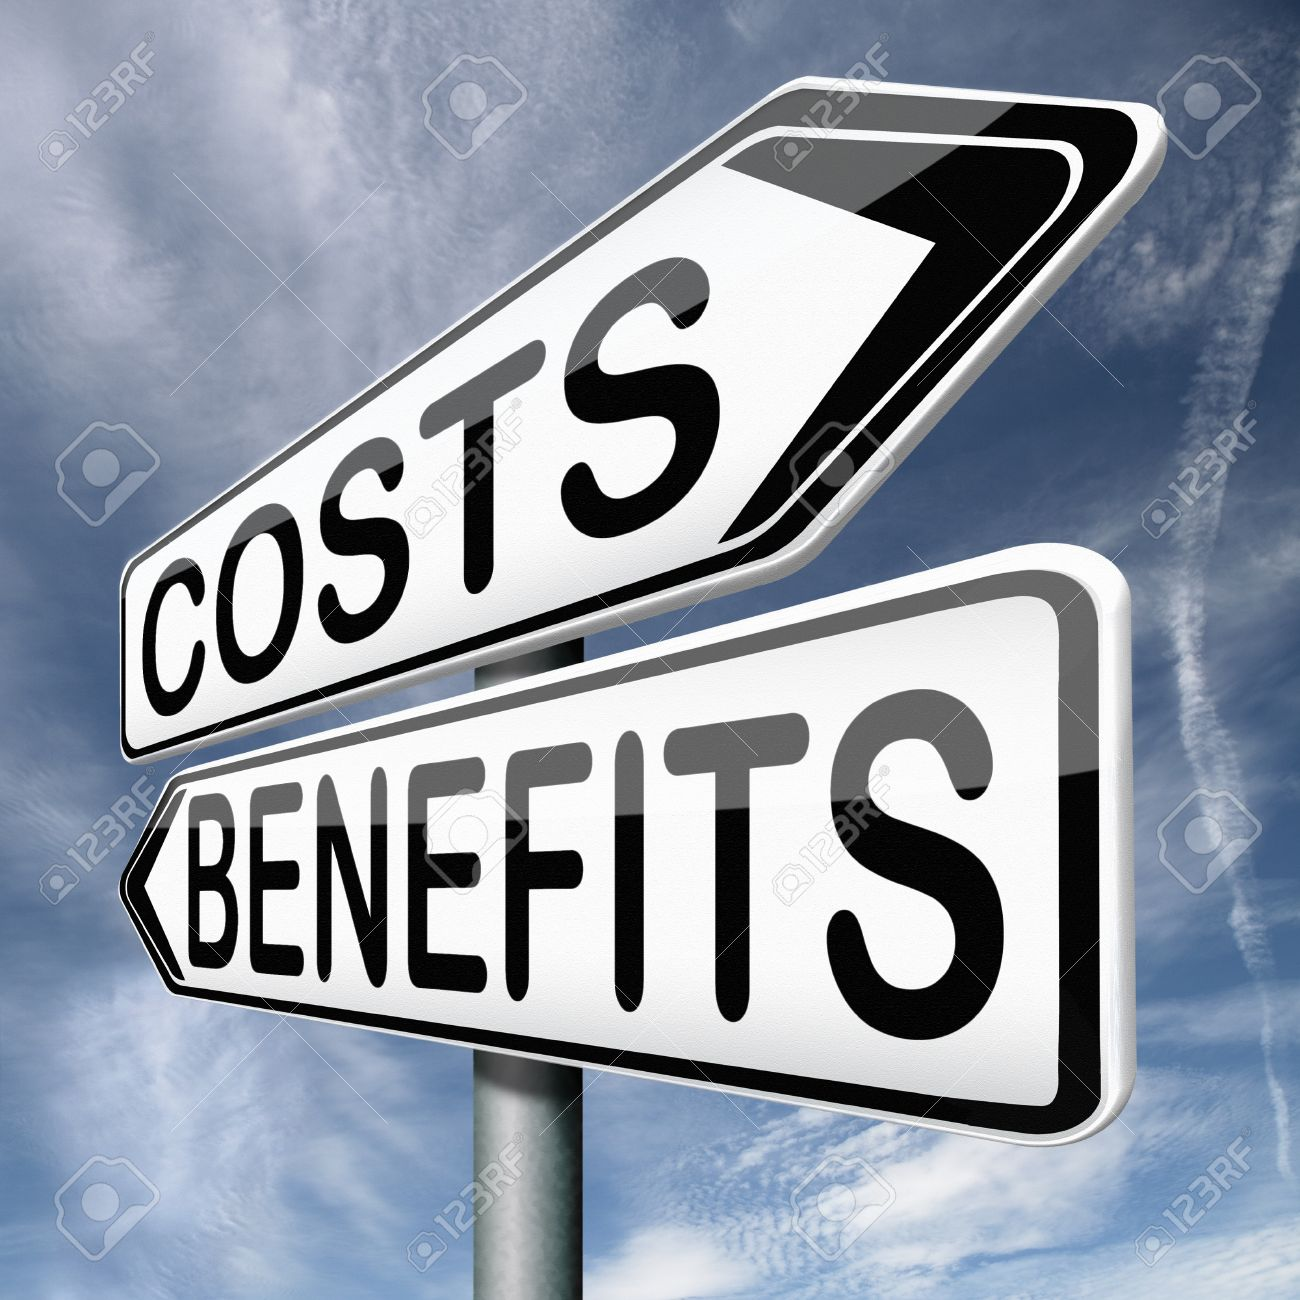 costs and benefits analysis business management investment value and analysis of financial risk cost versus value Stock Photo - 17411676